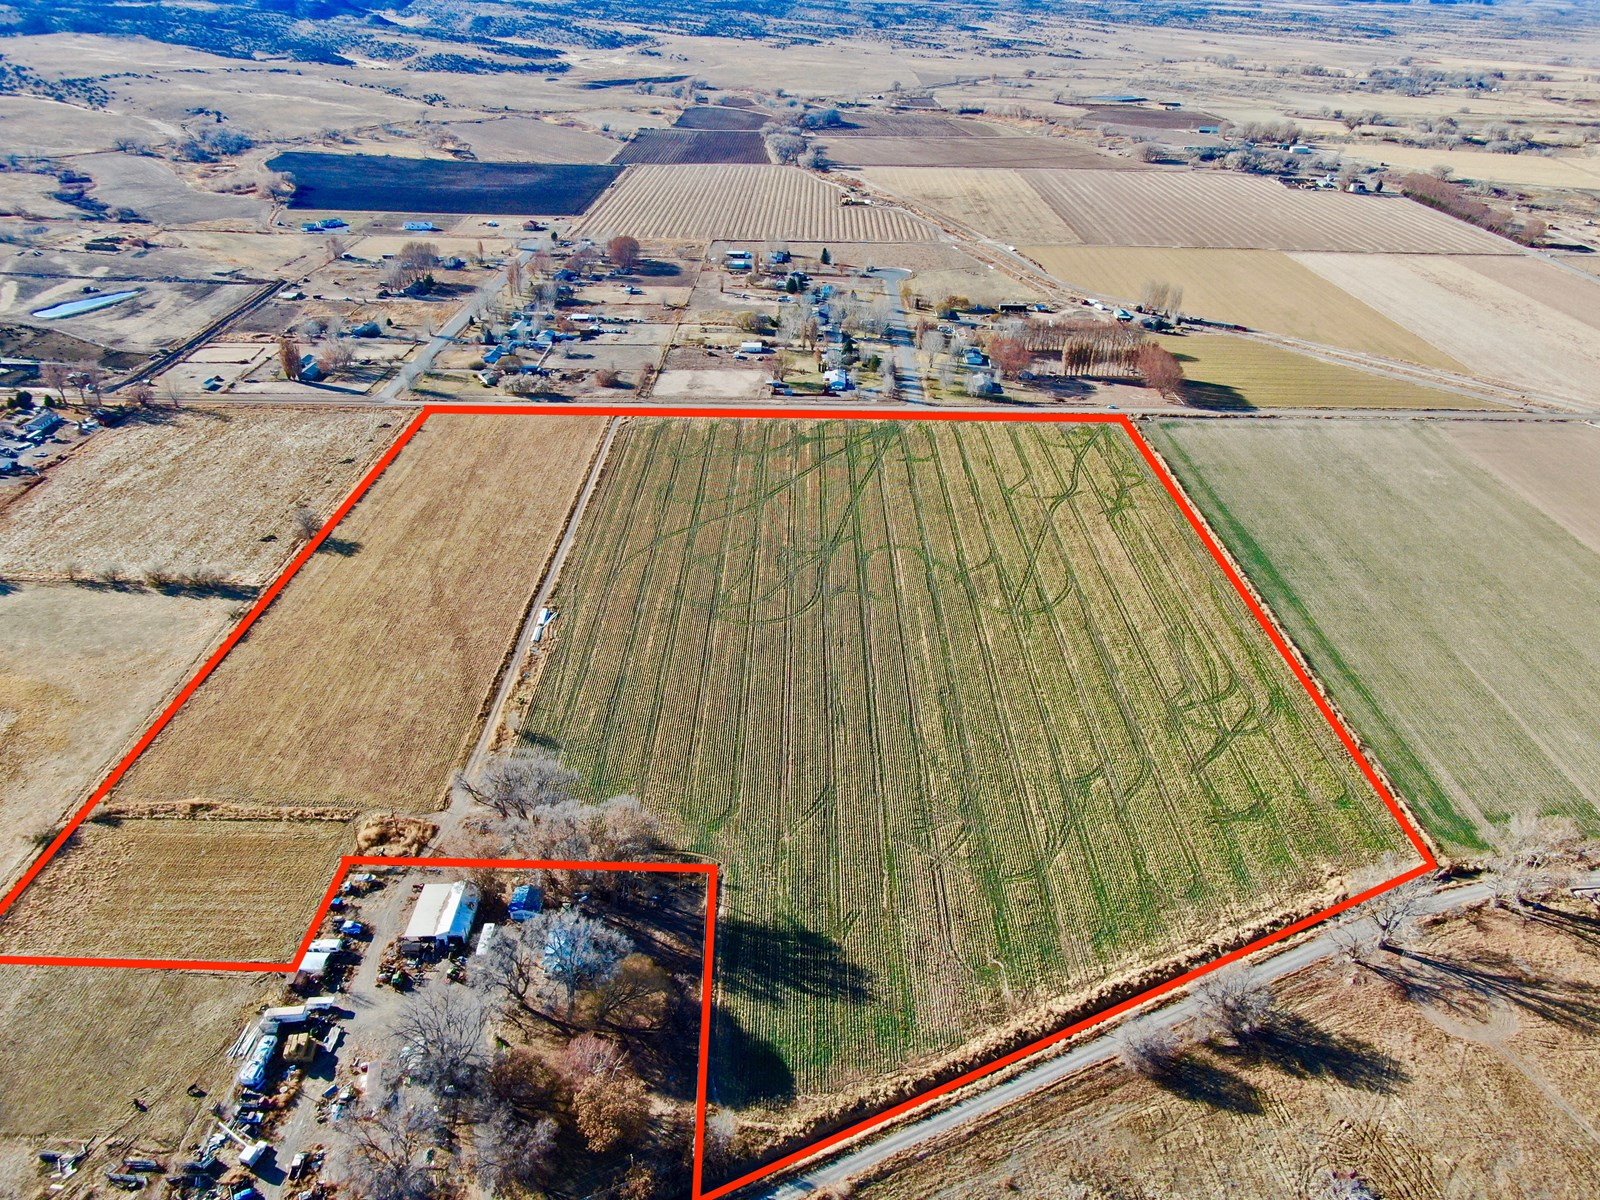 Colorado Row Crop and Farm Land For Sale, Olathe Colorado